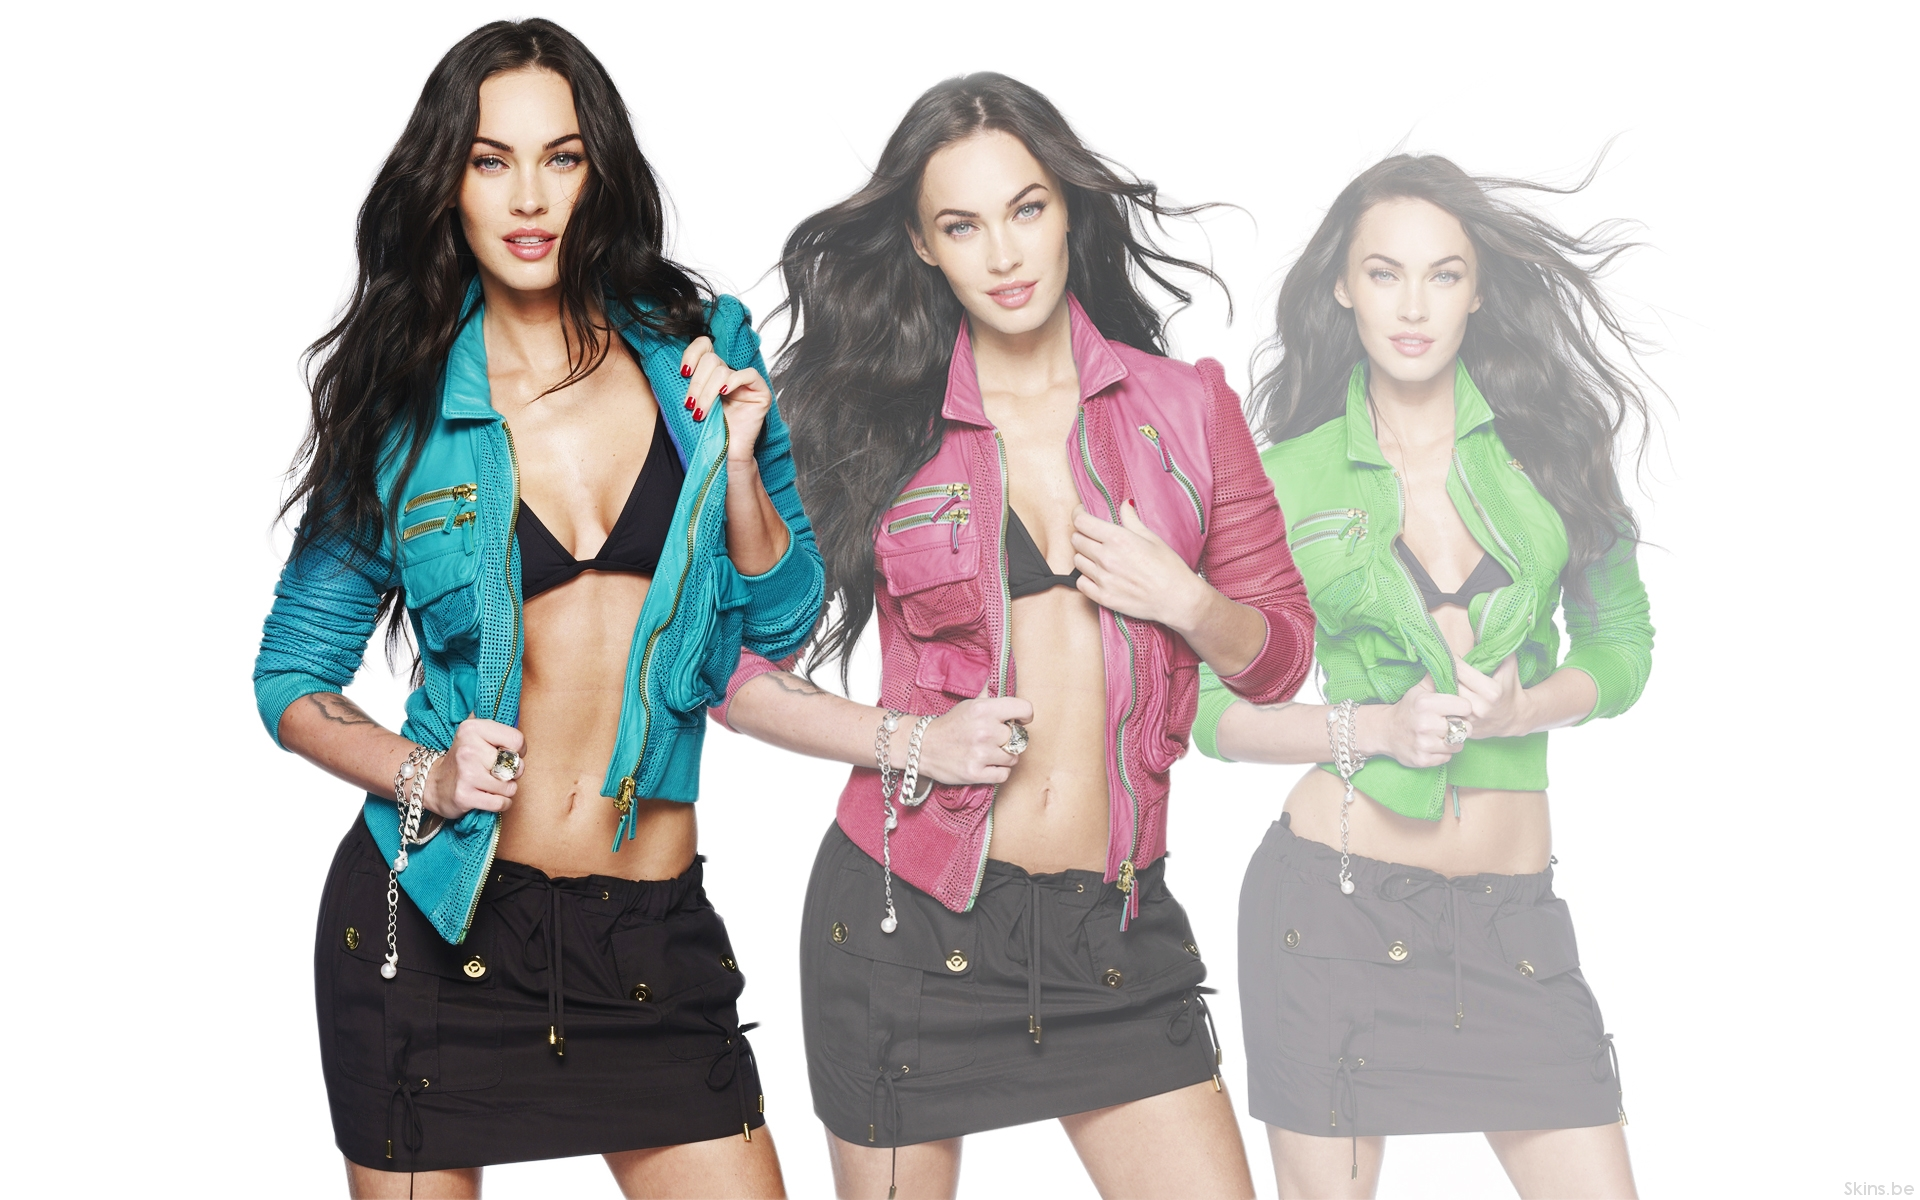 Megan Fox 74 wallpaper